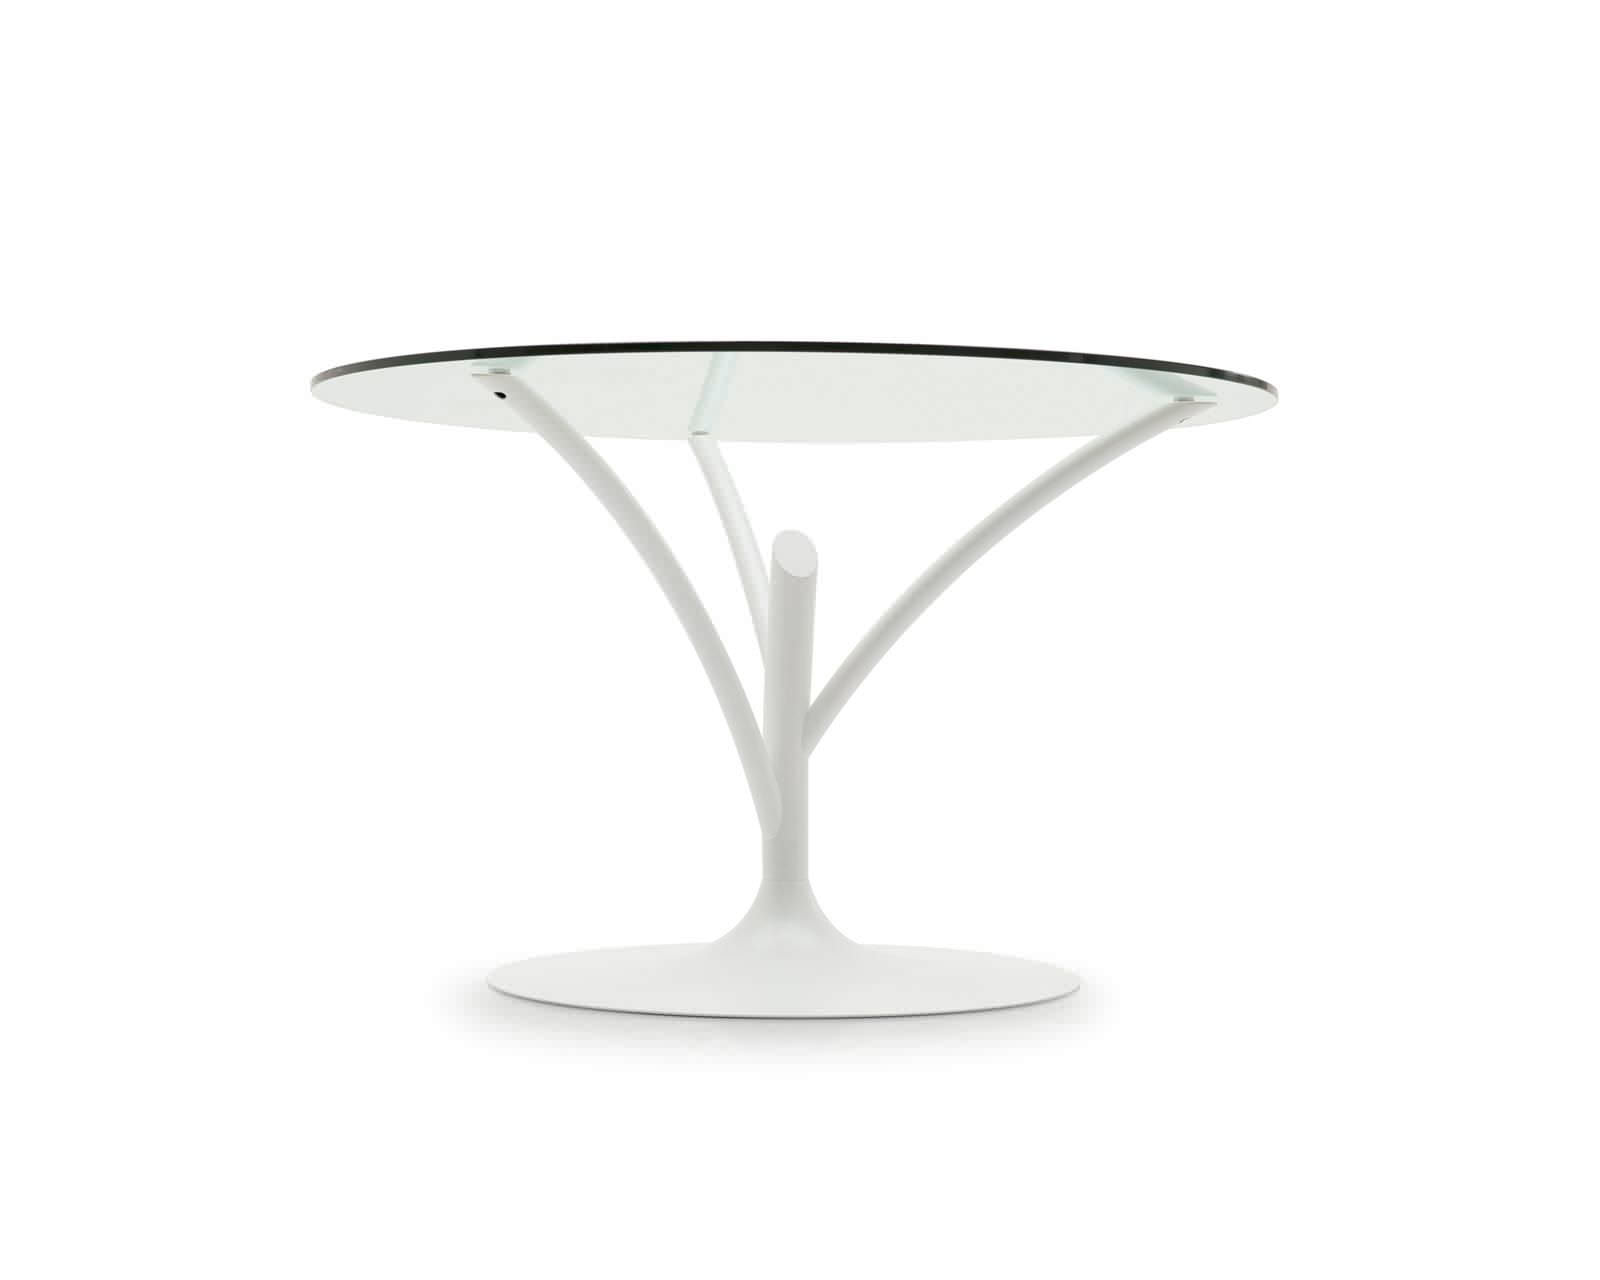 manger à contemporaine en ronde en métal Table verre HWED9I2Y